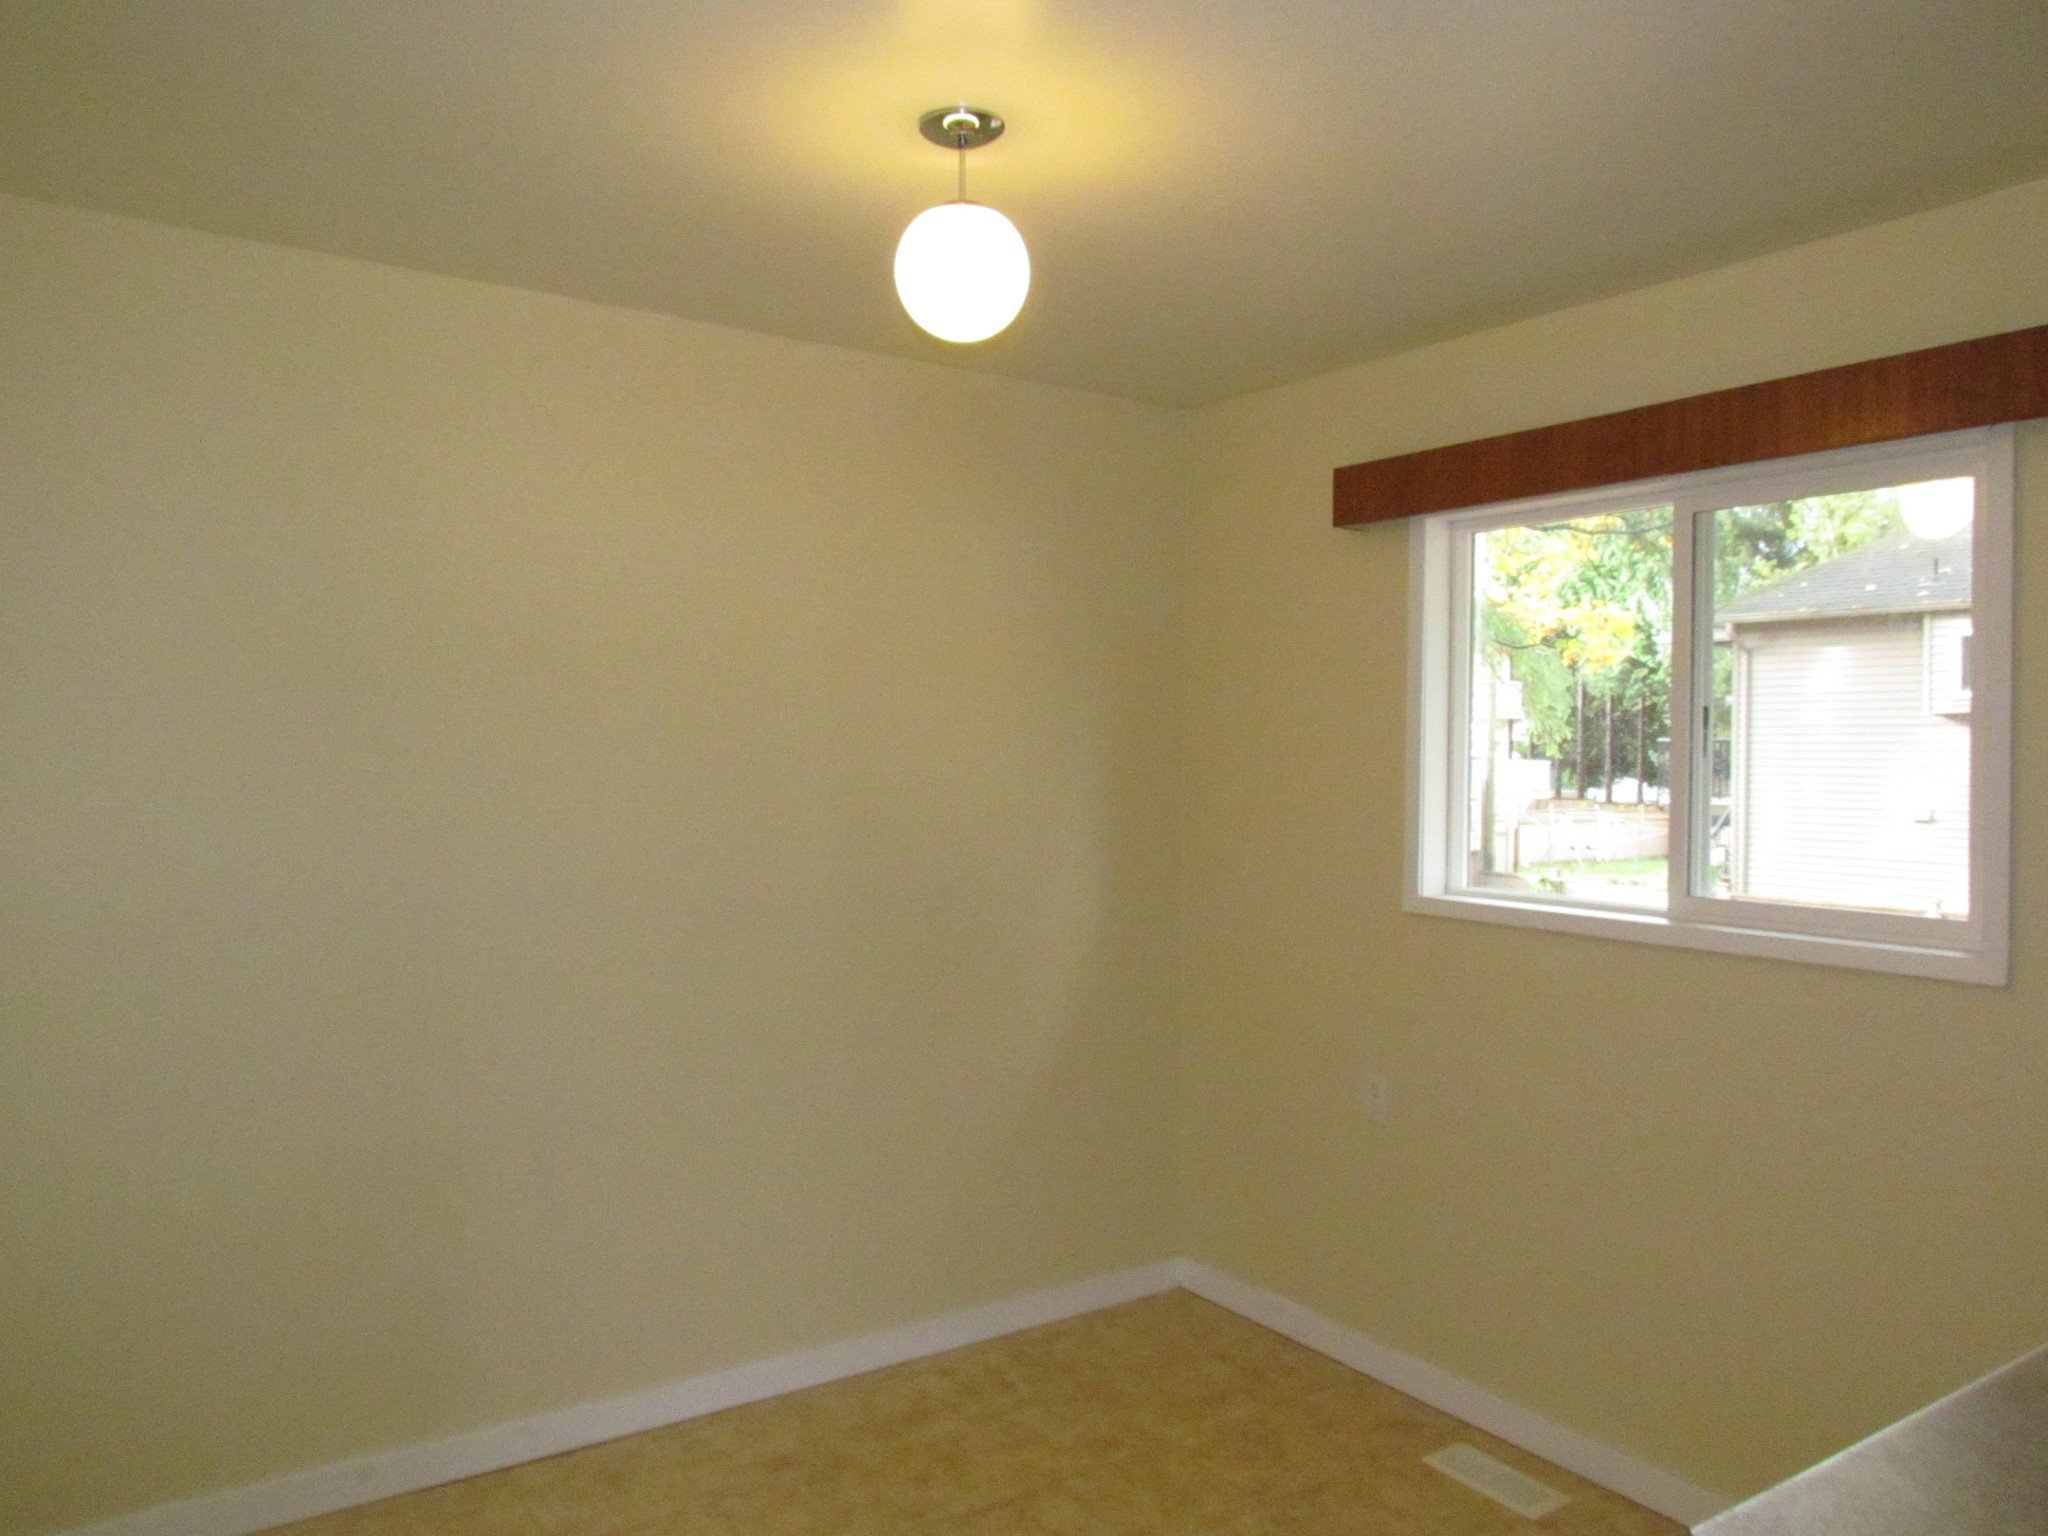 Photo 3: Photos: 1625 Kirklyn St. in Abbotsford: Central Abbotsford House for rent